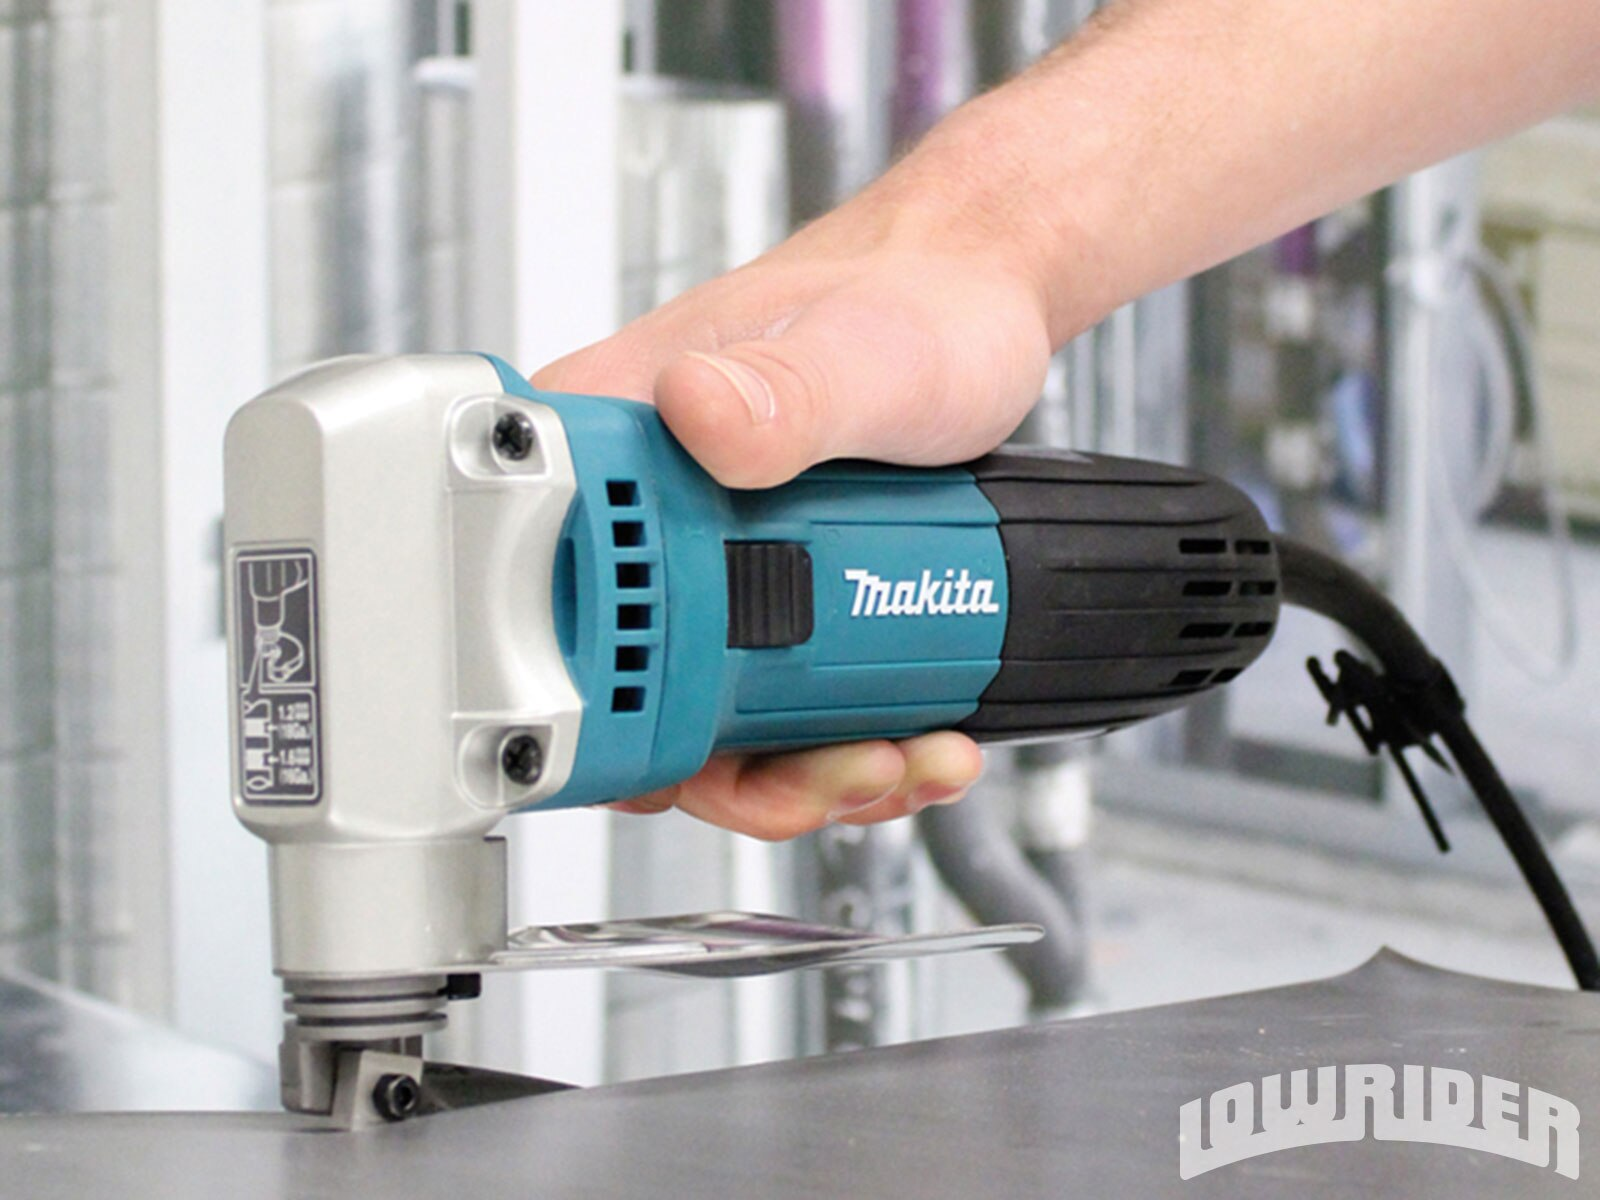 lowrider-new-products-november-2013-makita-JS1602-metal-shears1